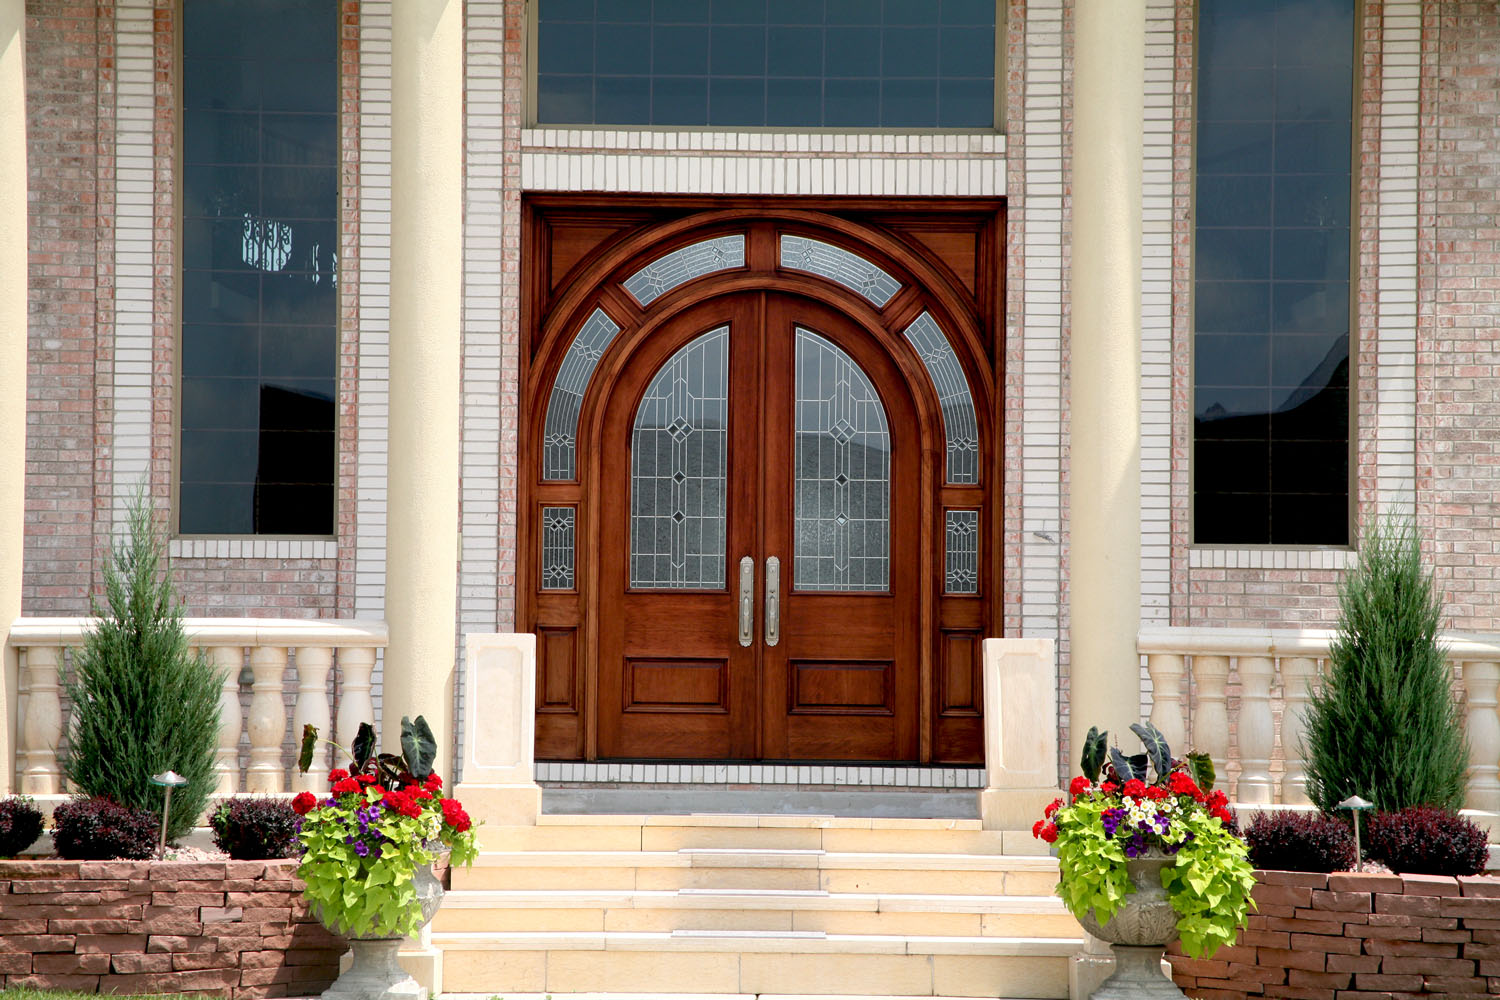 1000 #6C311A Arched Top Radius Wood Doors For Sale In Indianapolis NICKSBUILDING  picture/photo Arched Doors With Glass 42191500